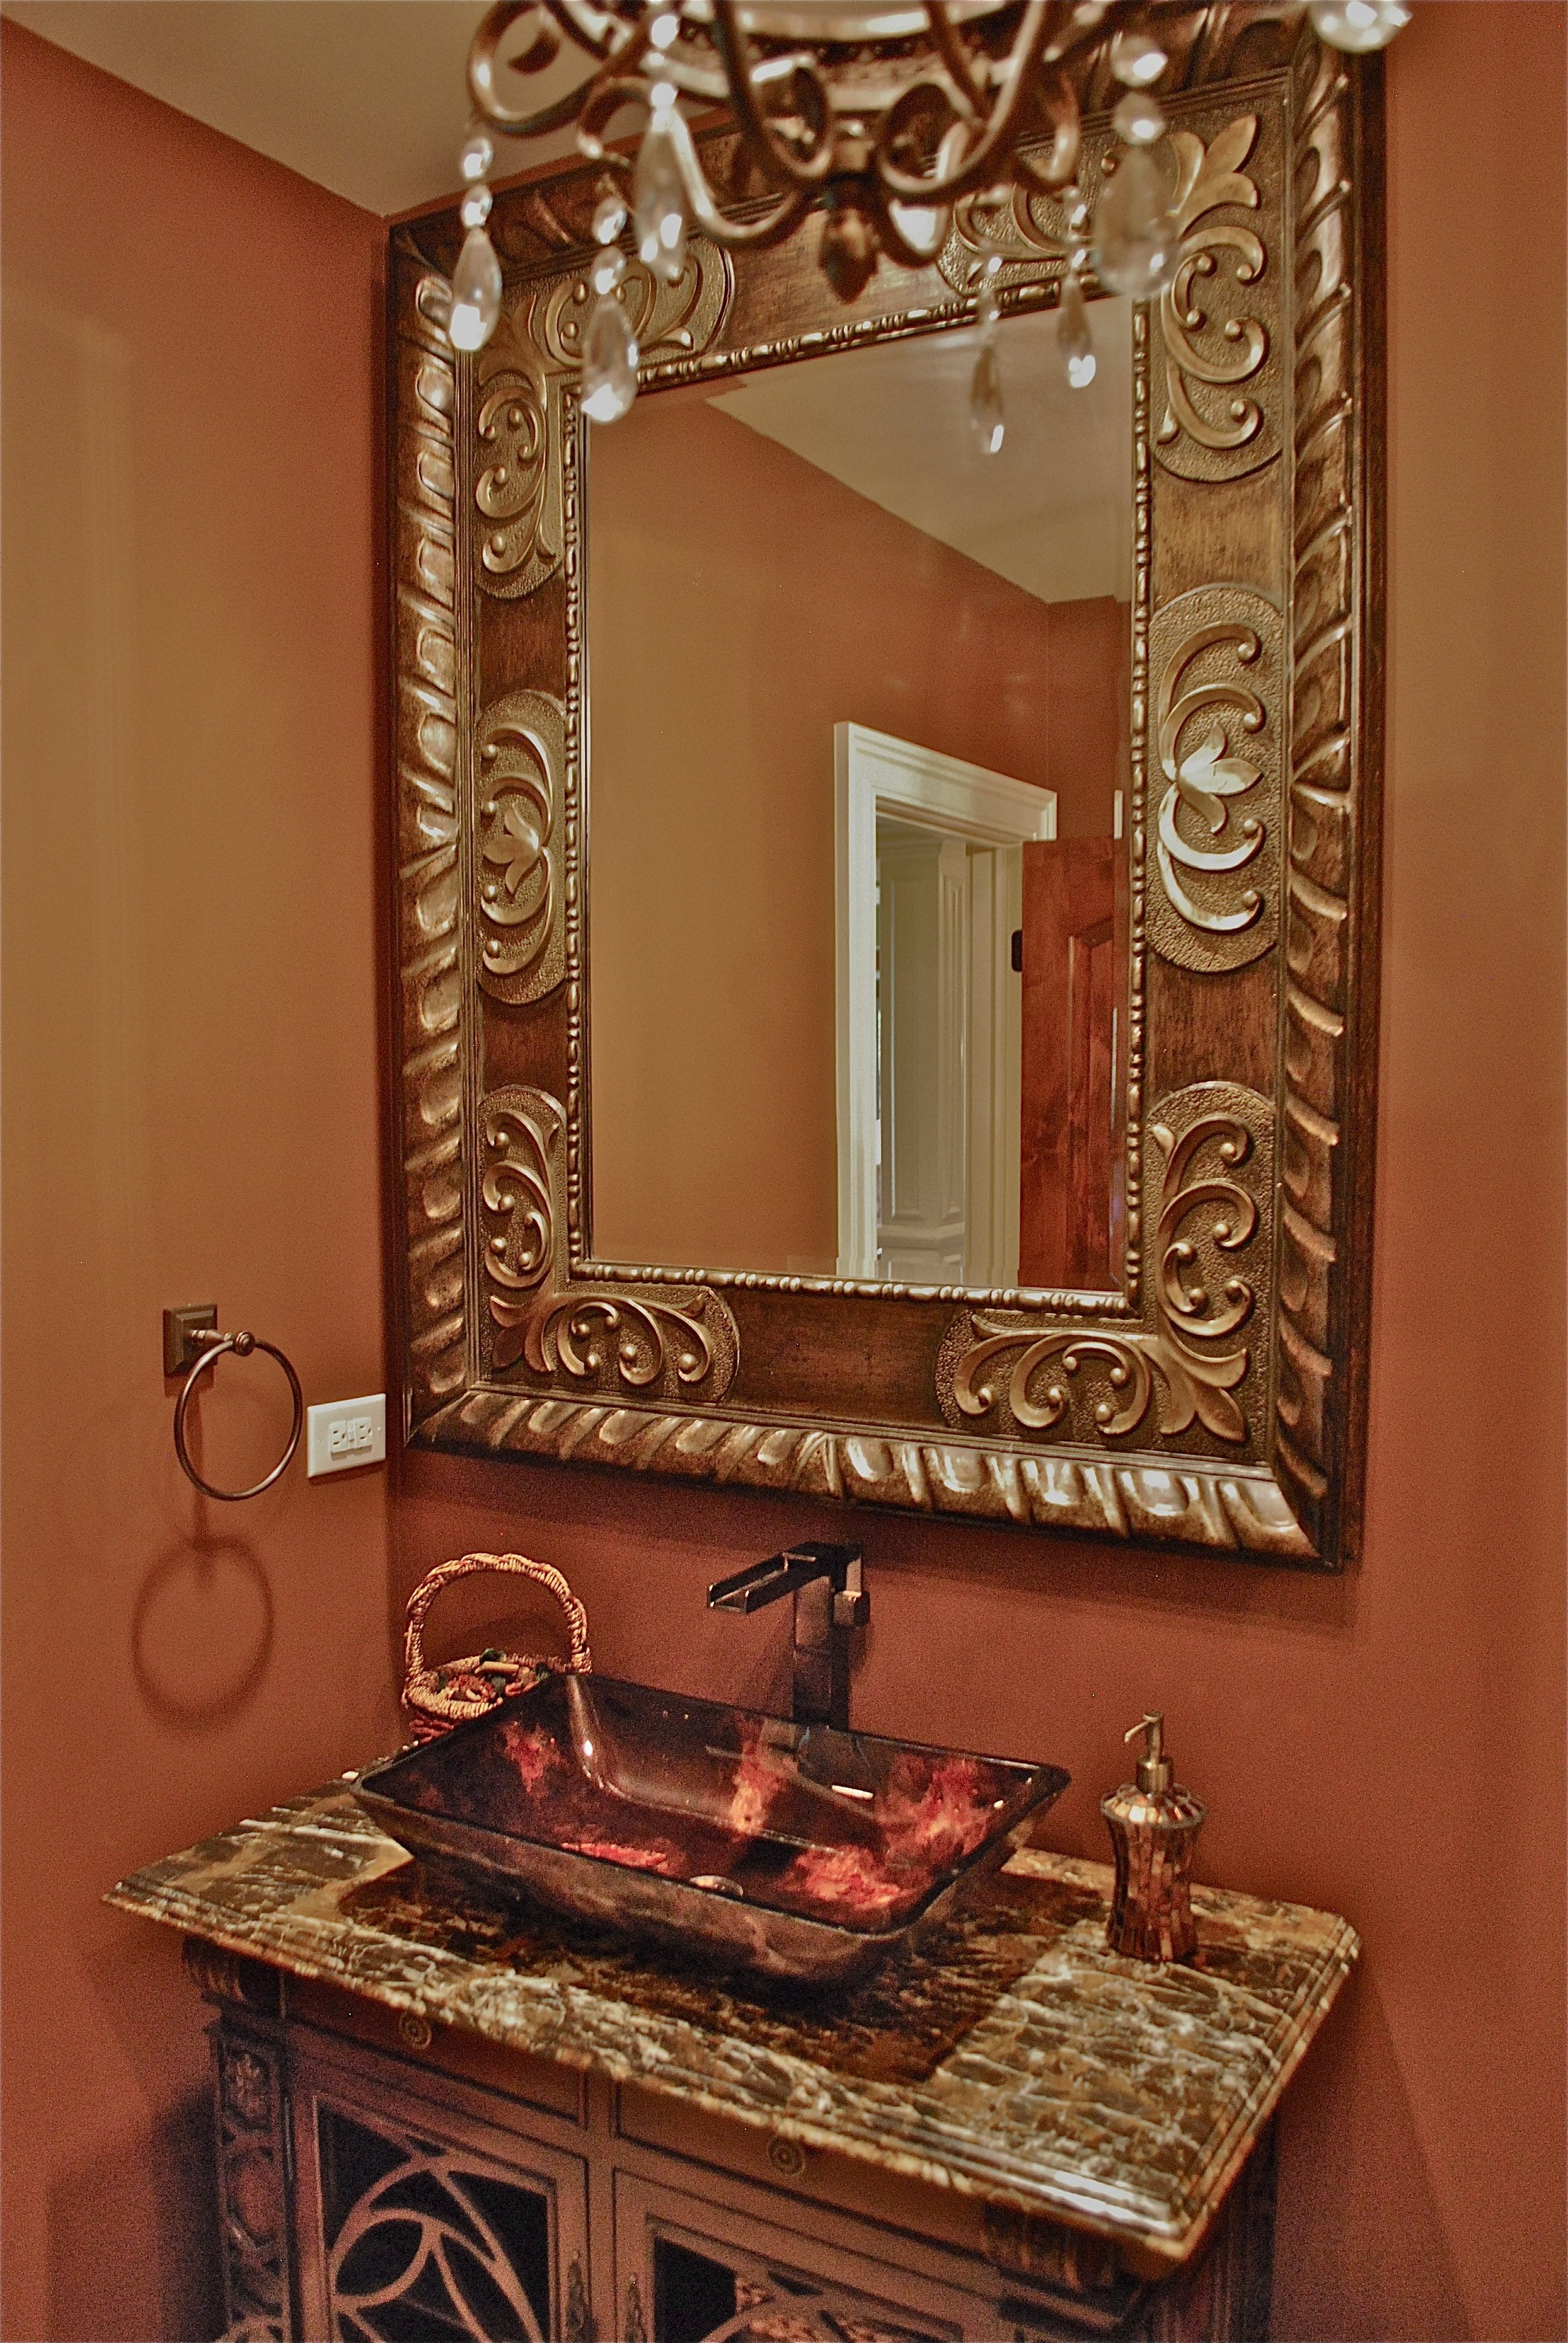 OVER THE TOP BATHROOM POWDER ROOM ST. CHARLES